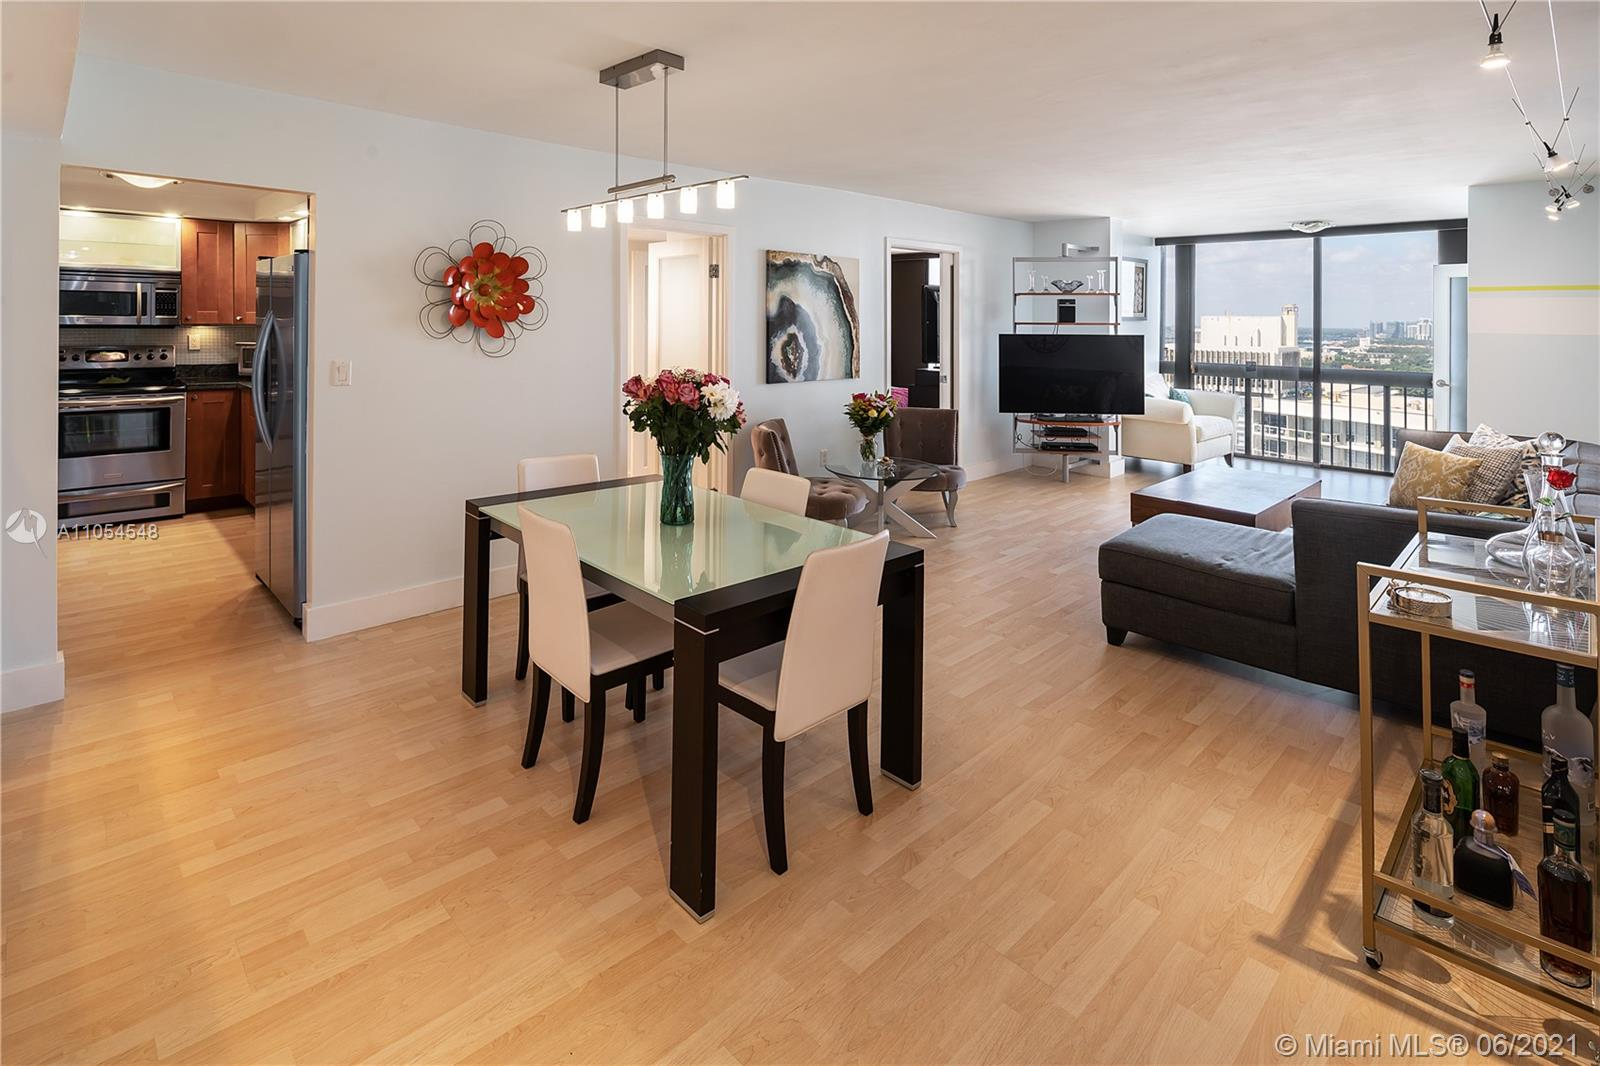 Move in Ready Unit on most desired south end of Brickell Avenue. This Waterfront apt has 2 Bedroom/ 2 Bathrooms remodeled, SS Appliances, granite countertop, Walk-In Closets, All Impact Glass. Enjoy beautiful Bay Views & Mesmerizing Sunsets from the 28th floor of the Iconic Brickell B. Located at Brickell Bay Club Condominium gated community w/resort style amenities: Lap Heated Pool w/9 ft deep end, 5 Tennis Courts, Coffee Shop/ Mini Market Beauty, Beauty Salon, Kids Play Room & more. 24-HR Security & Valet. Minutes to Brickell's Financial District, Brickell City Centre's fine restaurants & shopping. Cable & Internet included in maintenance. **Unit is current rented until end of September 2021**